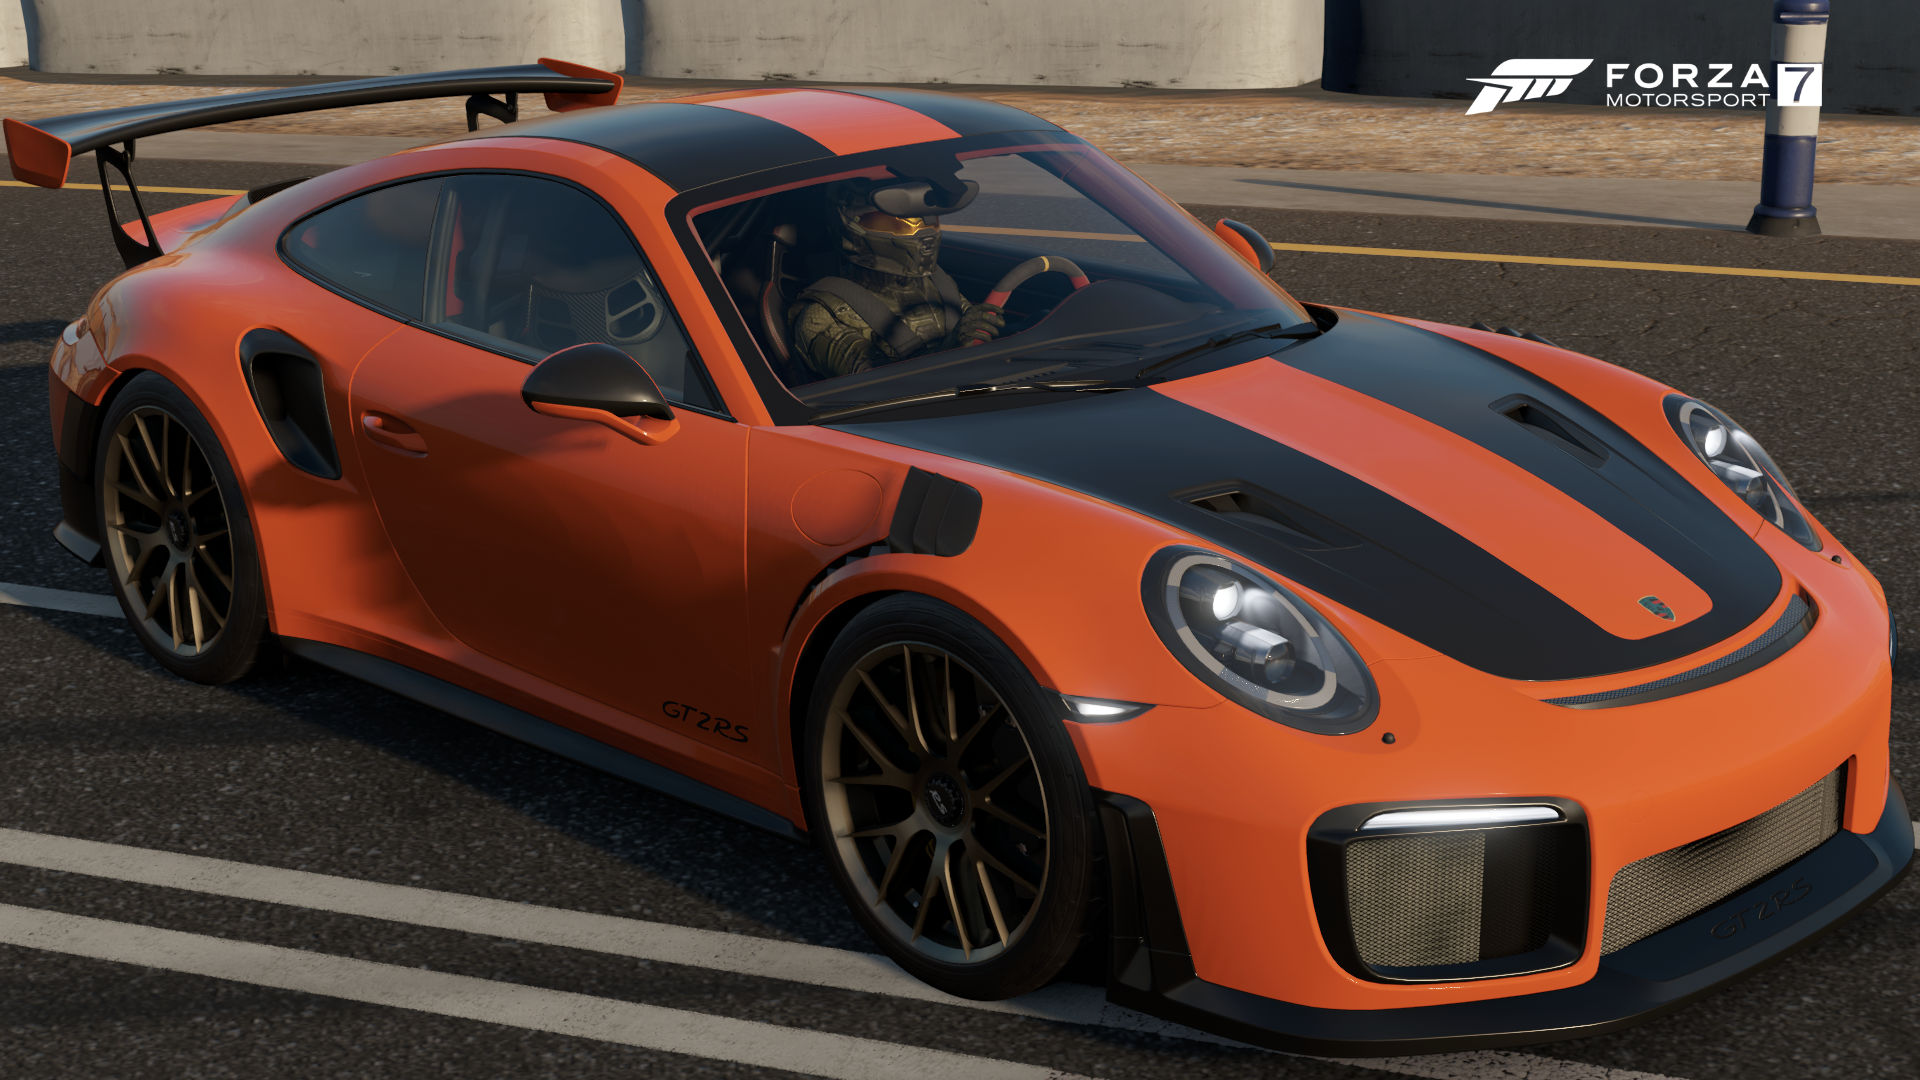 Porsche 911 GT2 RS (2018) | Forza Motorsport Wiki | FANDOM powered ...